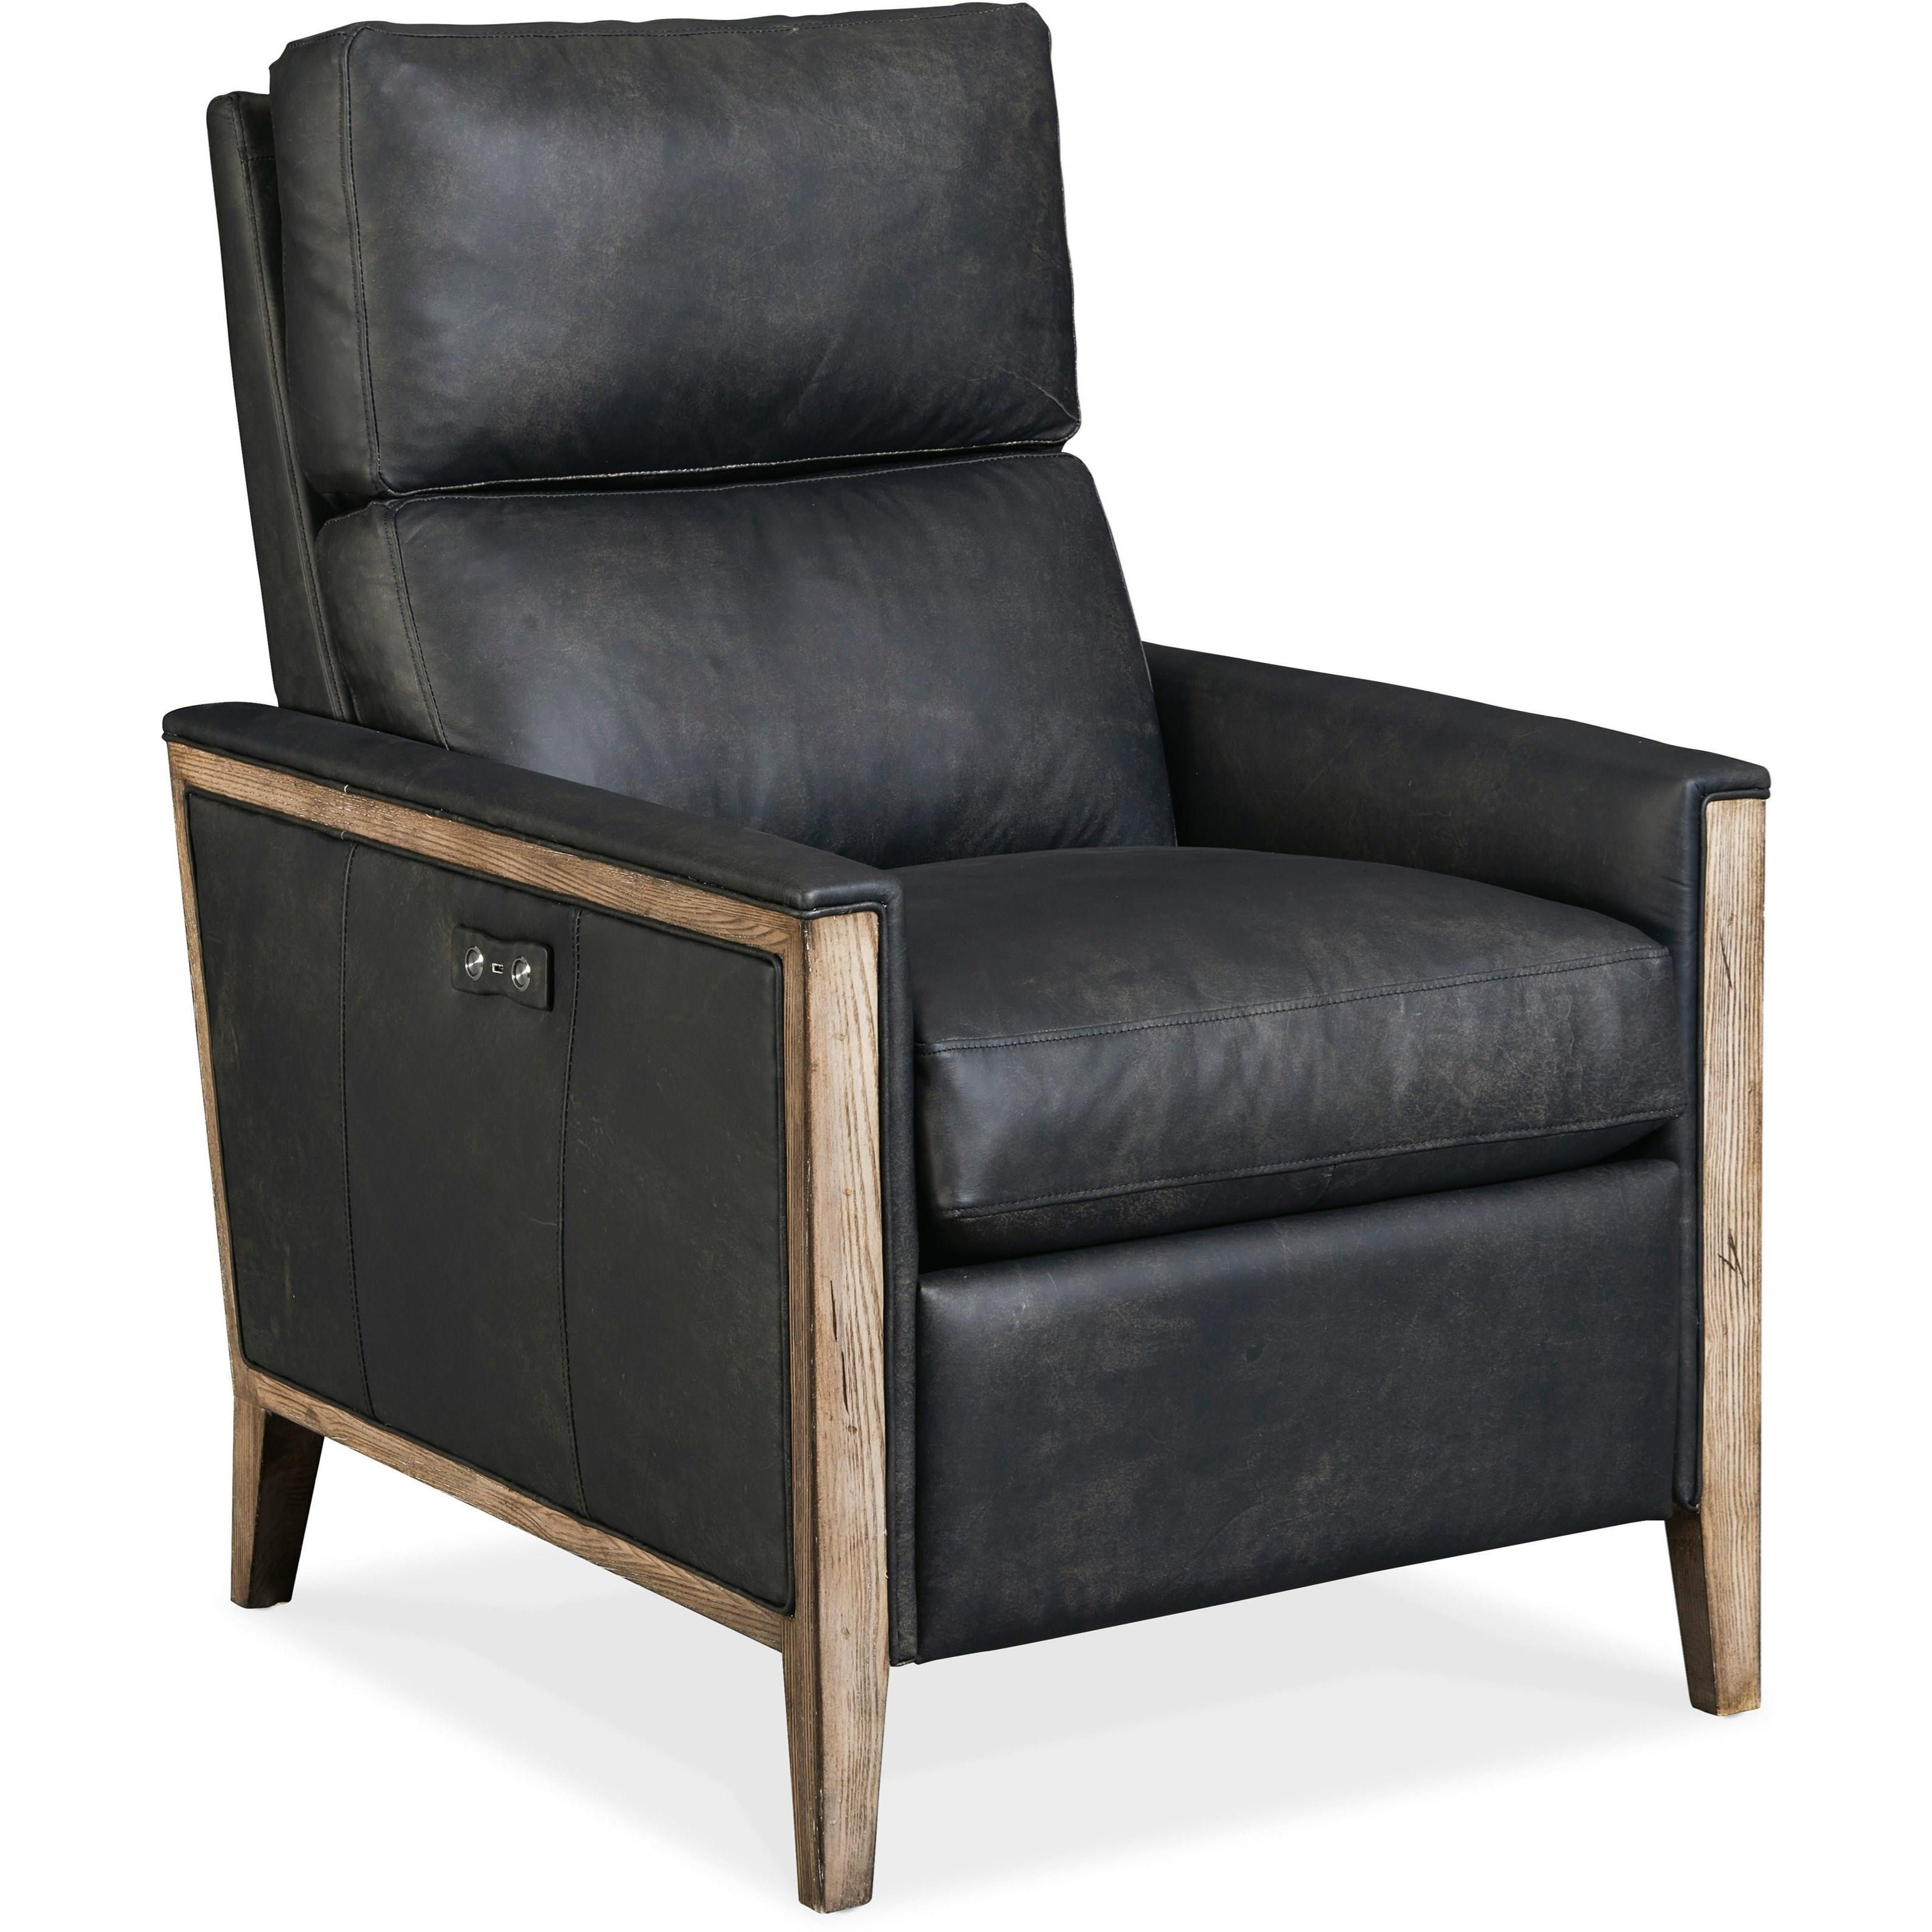 Reclining Chairs Power High Leg Recliner by Hooker Furniture at Baer's Furniture